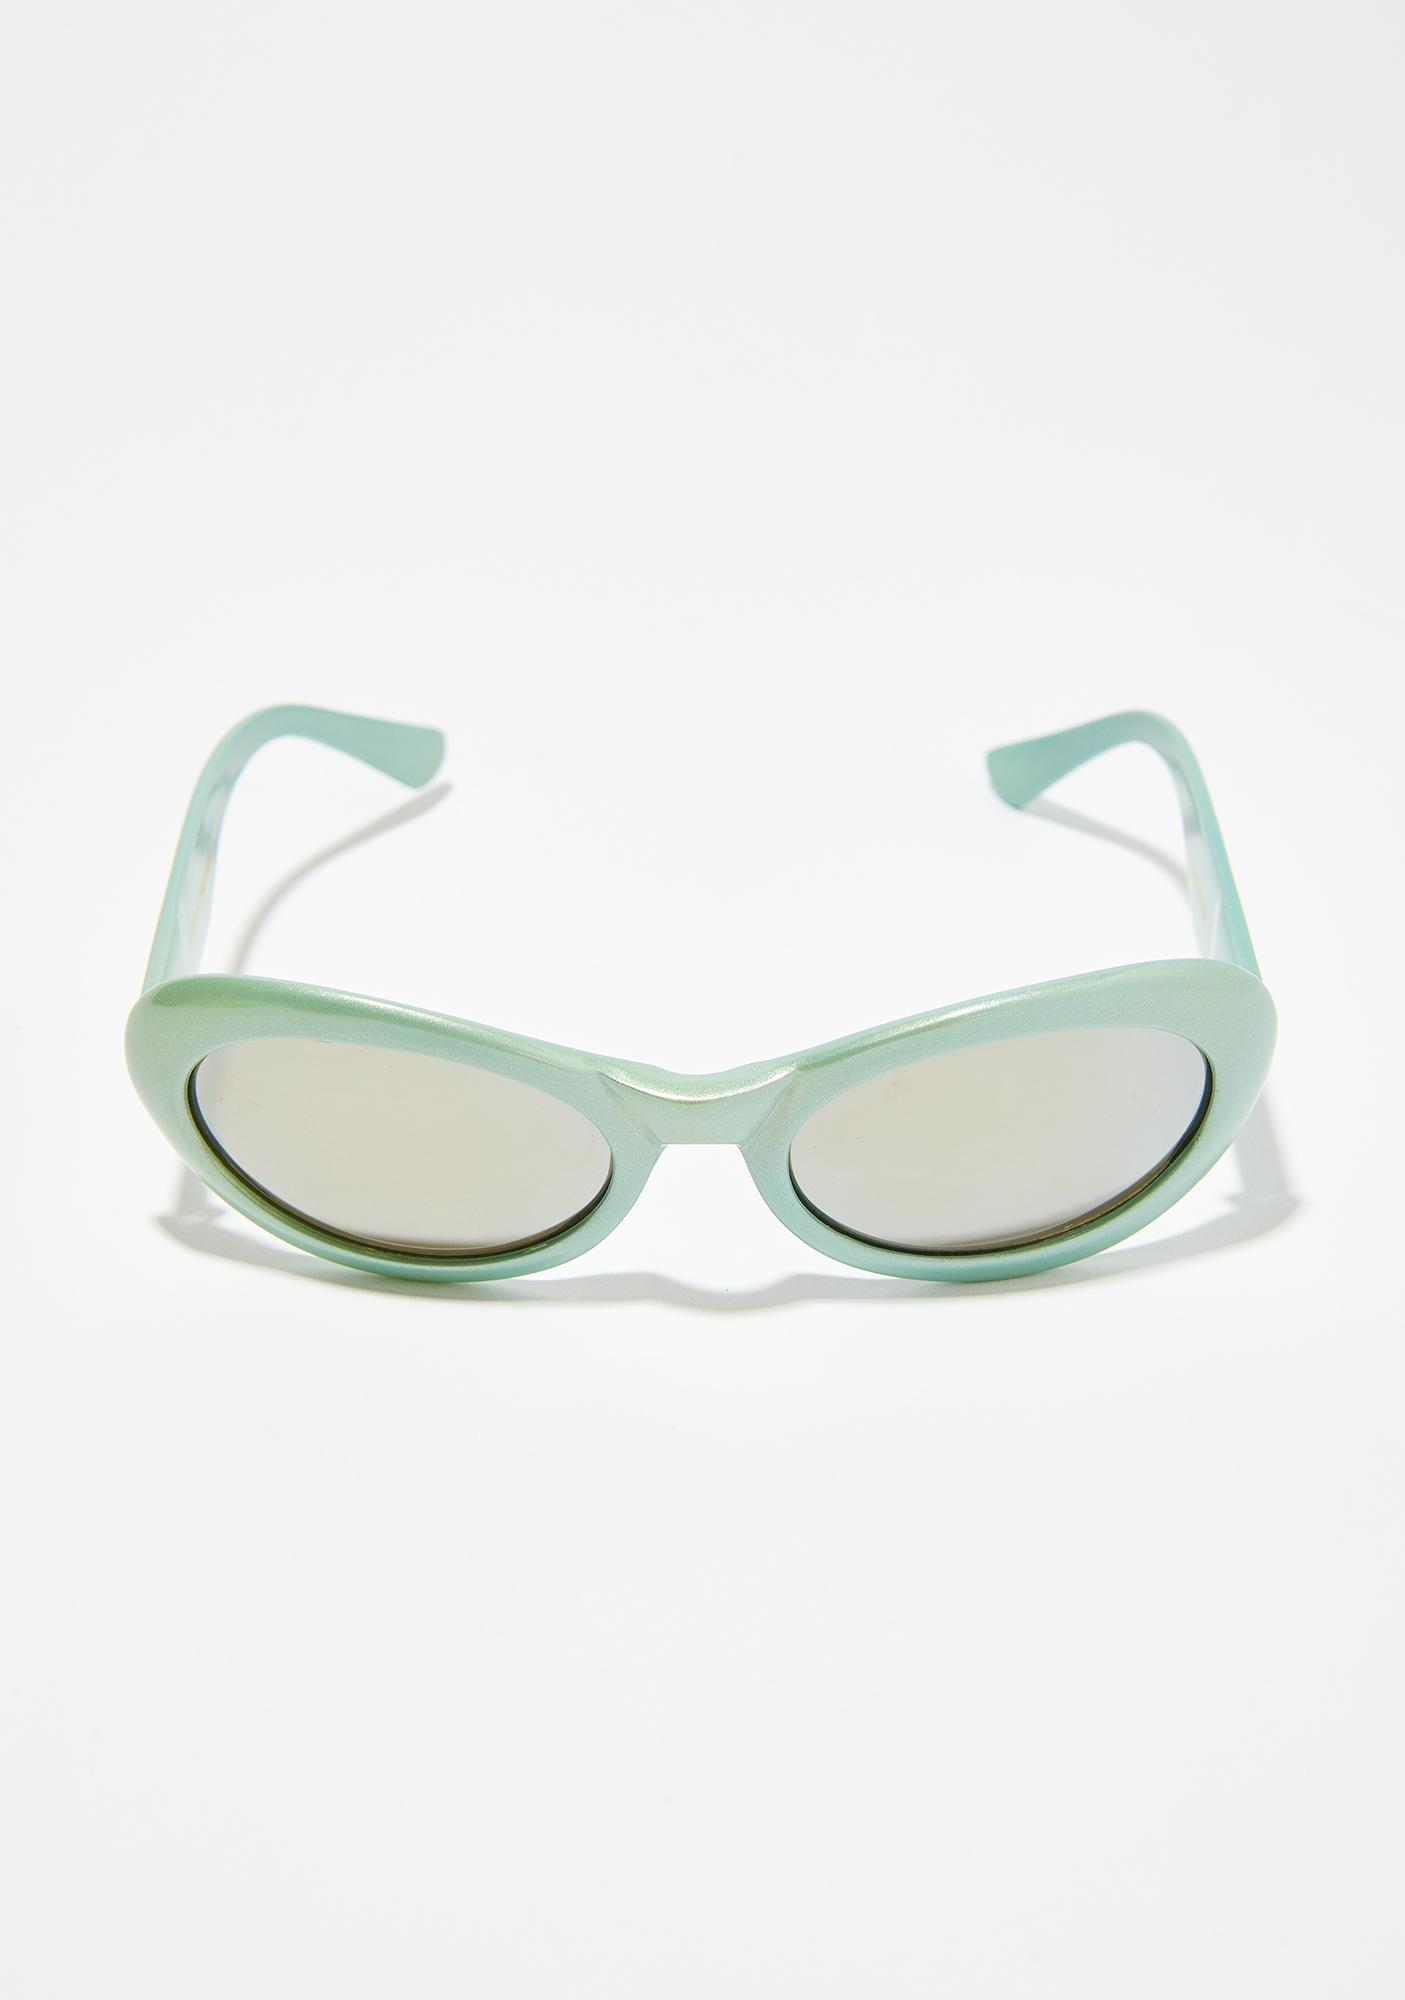 Chilling Winds Oval Sunglasses